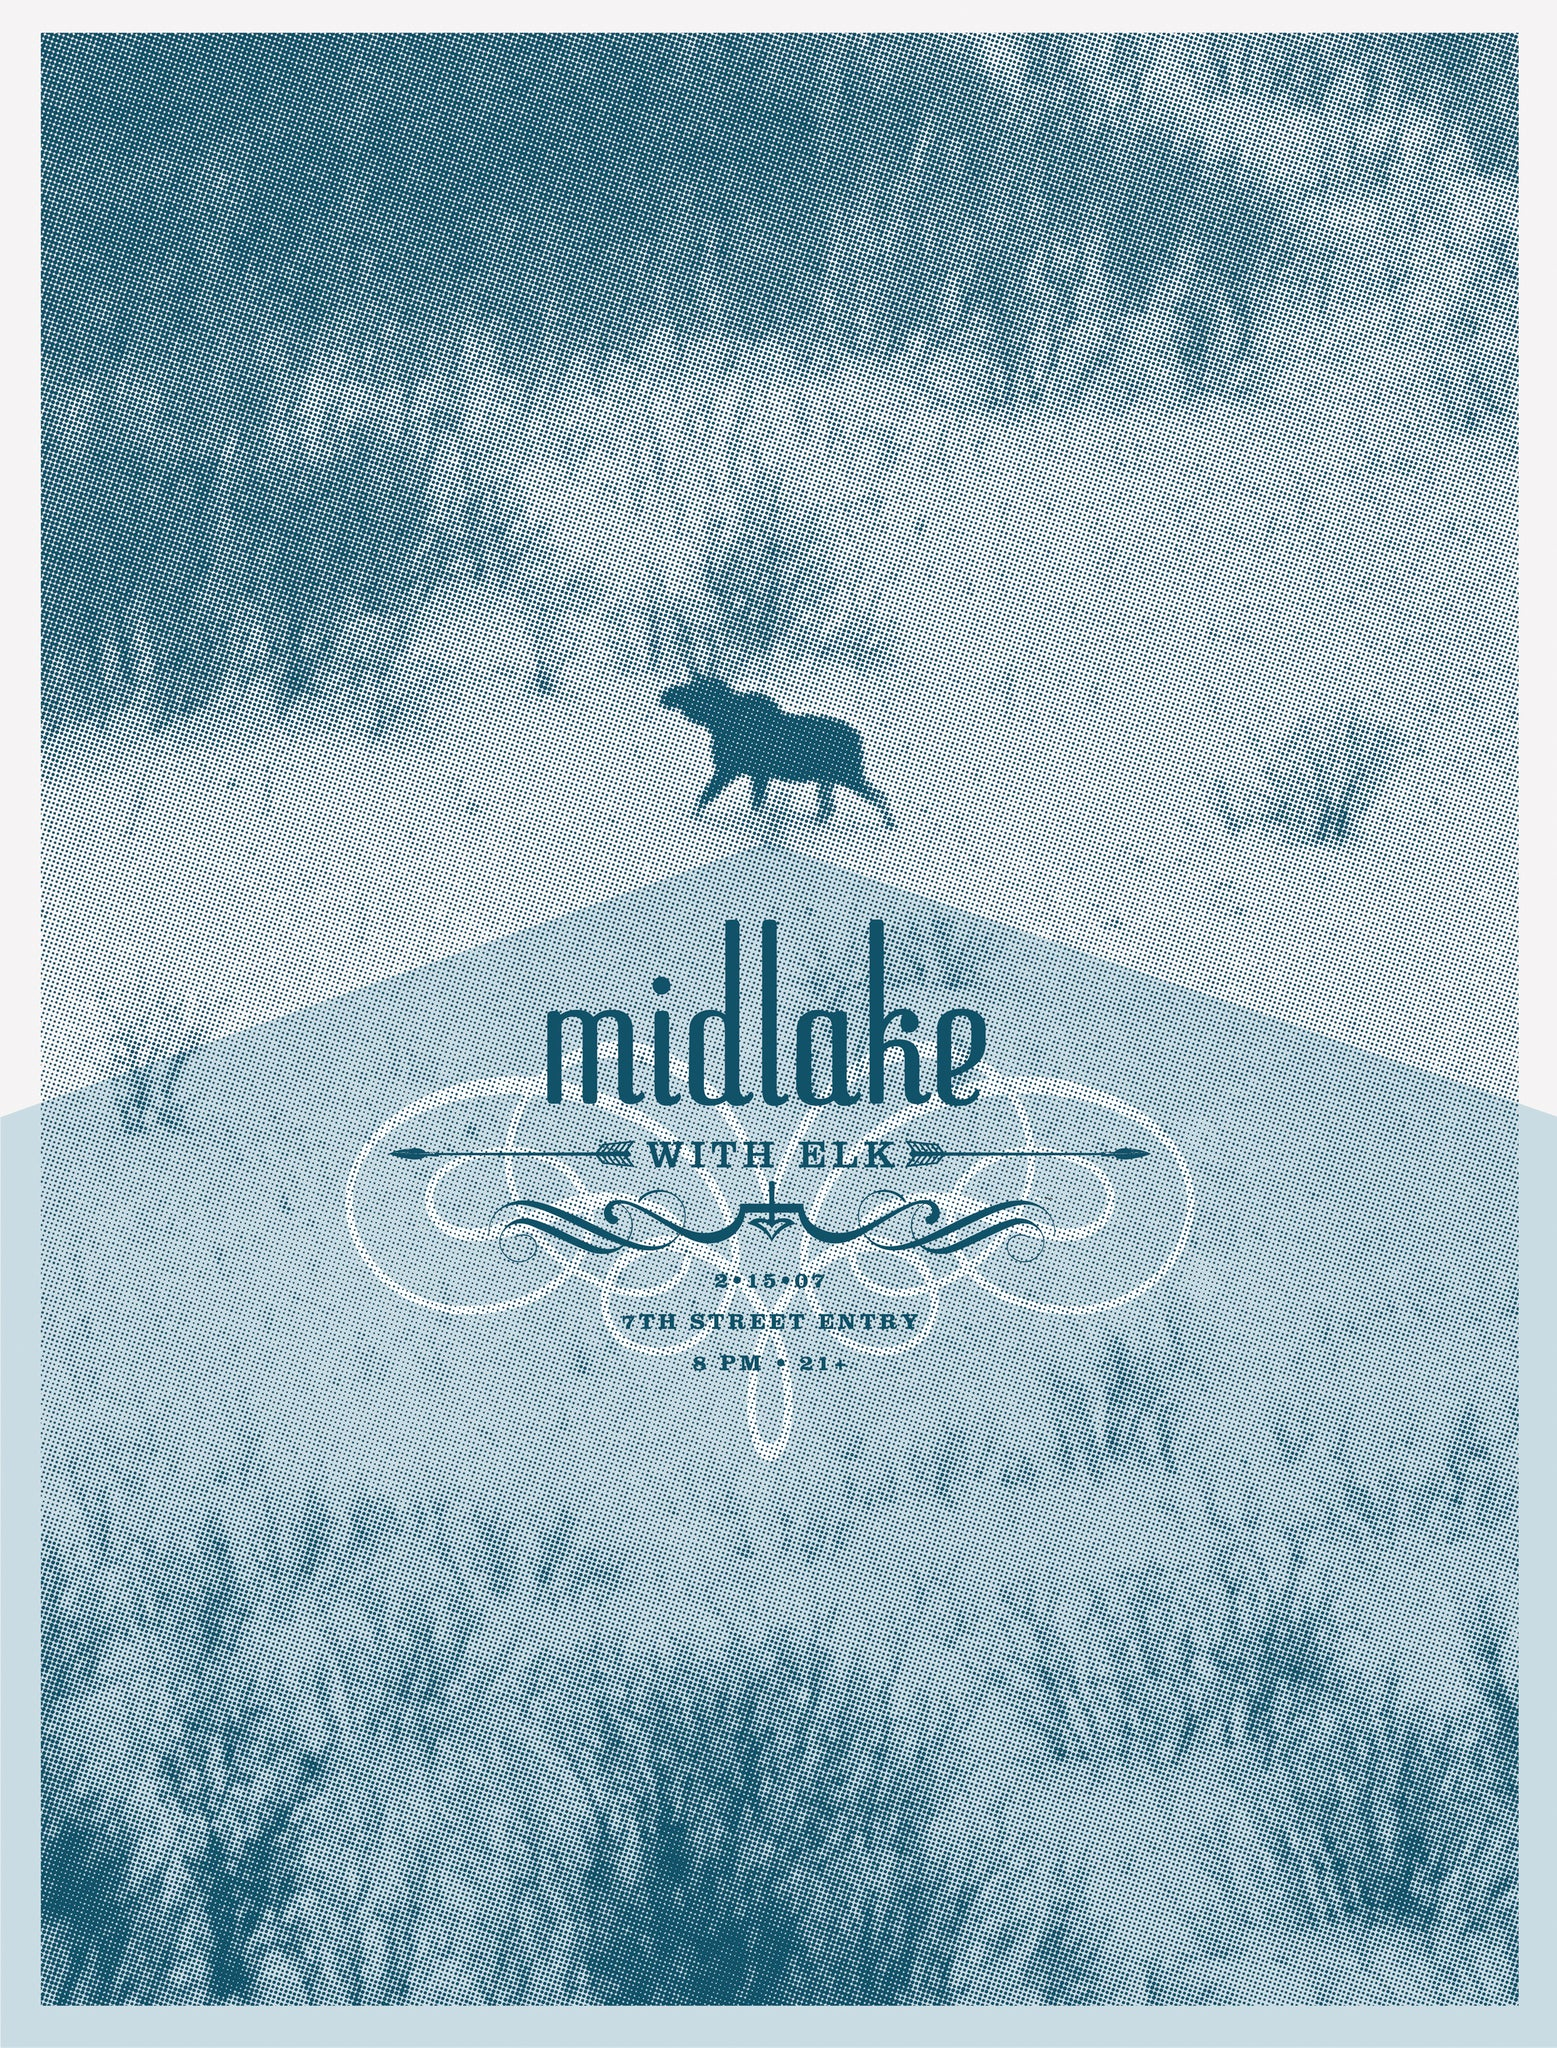 MIDLAKE w/ELK at 7th Street Entry, Minneapolis, MN